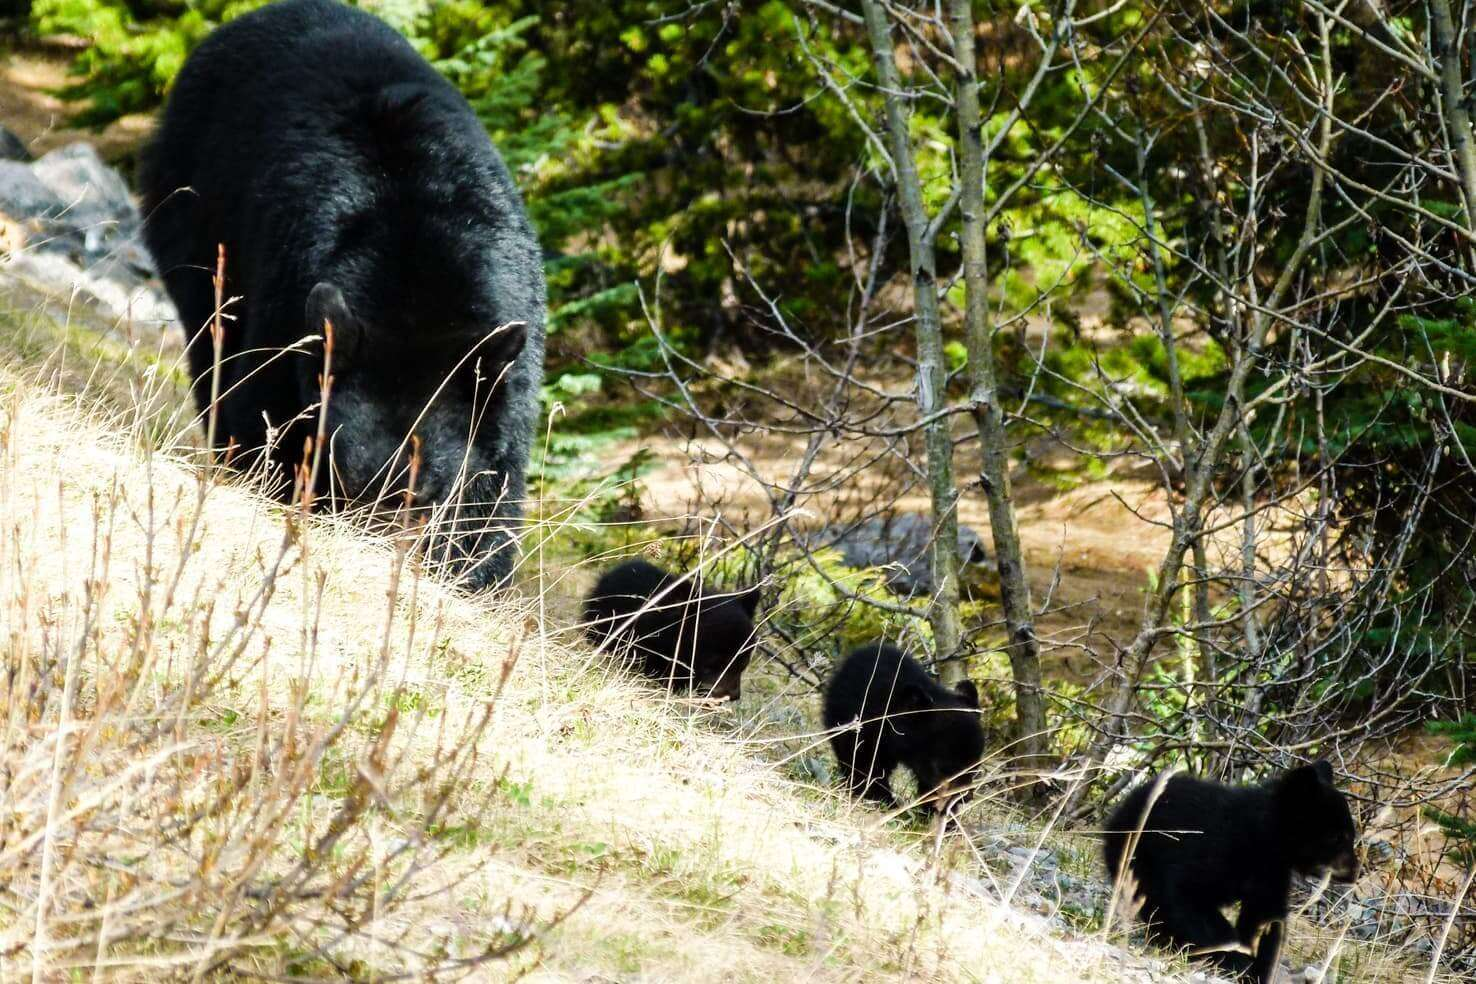 black bears in the wild